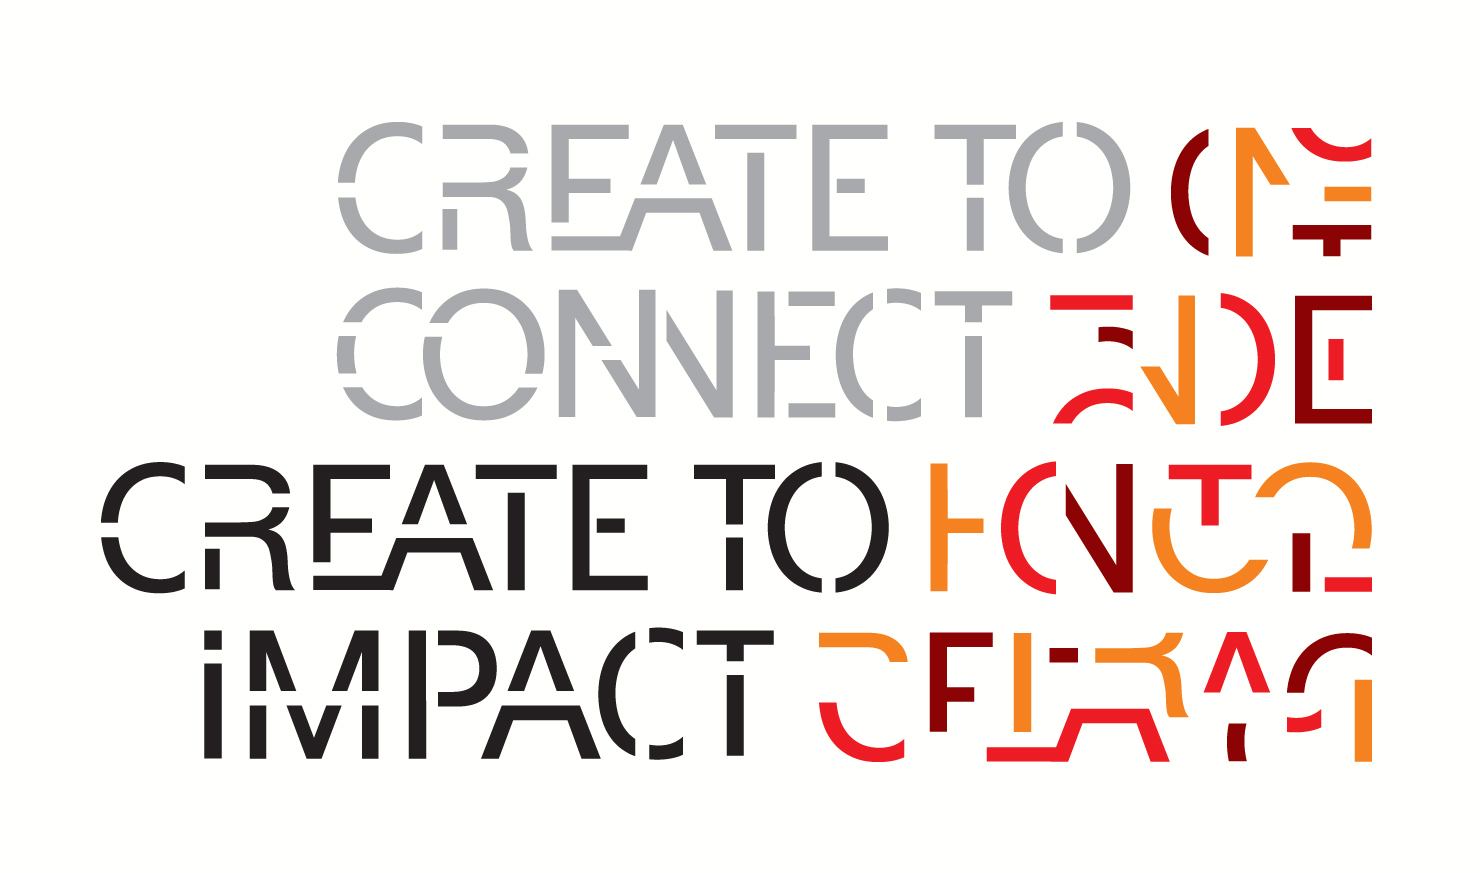 Afbeeldingsresultaat voor create to connect create to impact